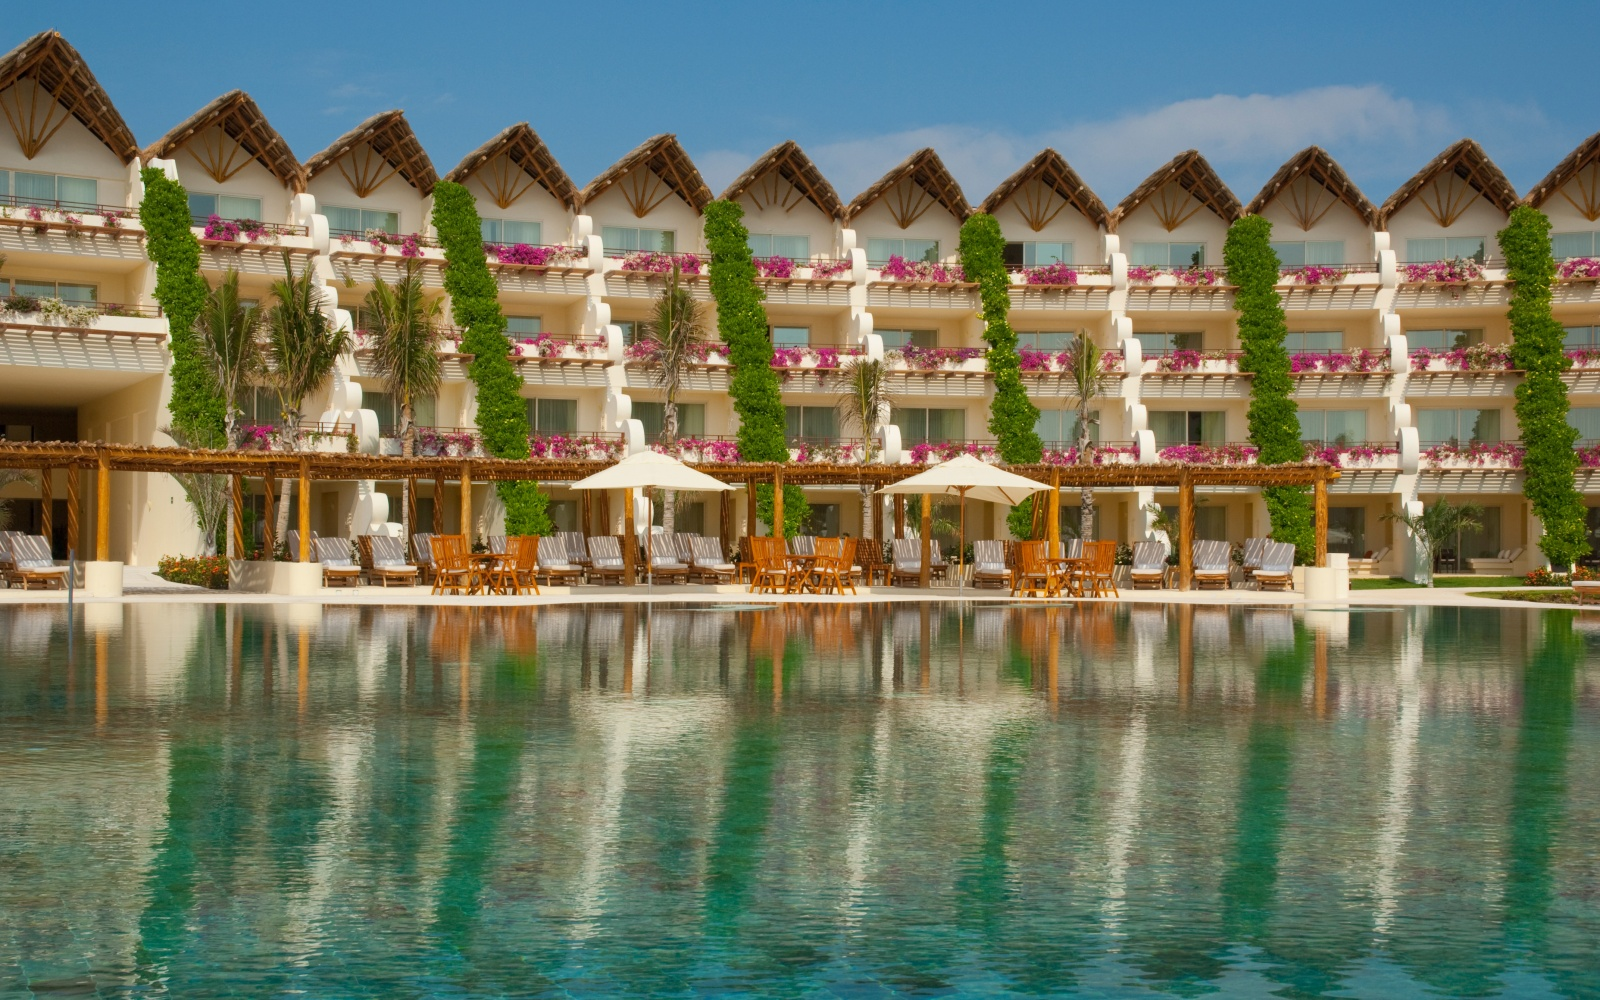 Grand Velas Riviera Maya beach resort in Playa del Carmen, Mexico